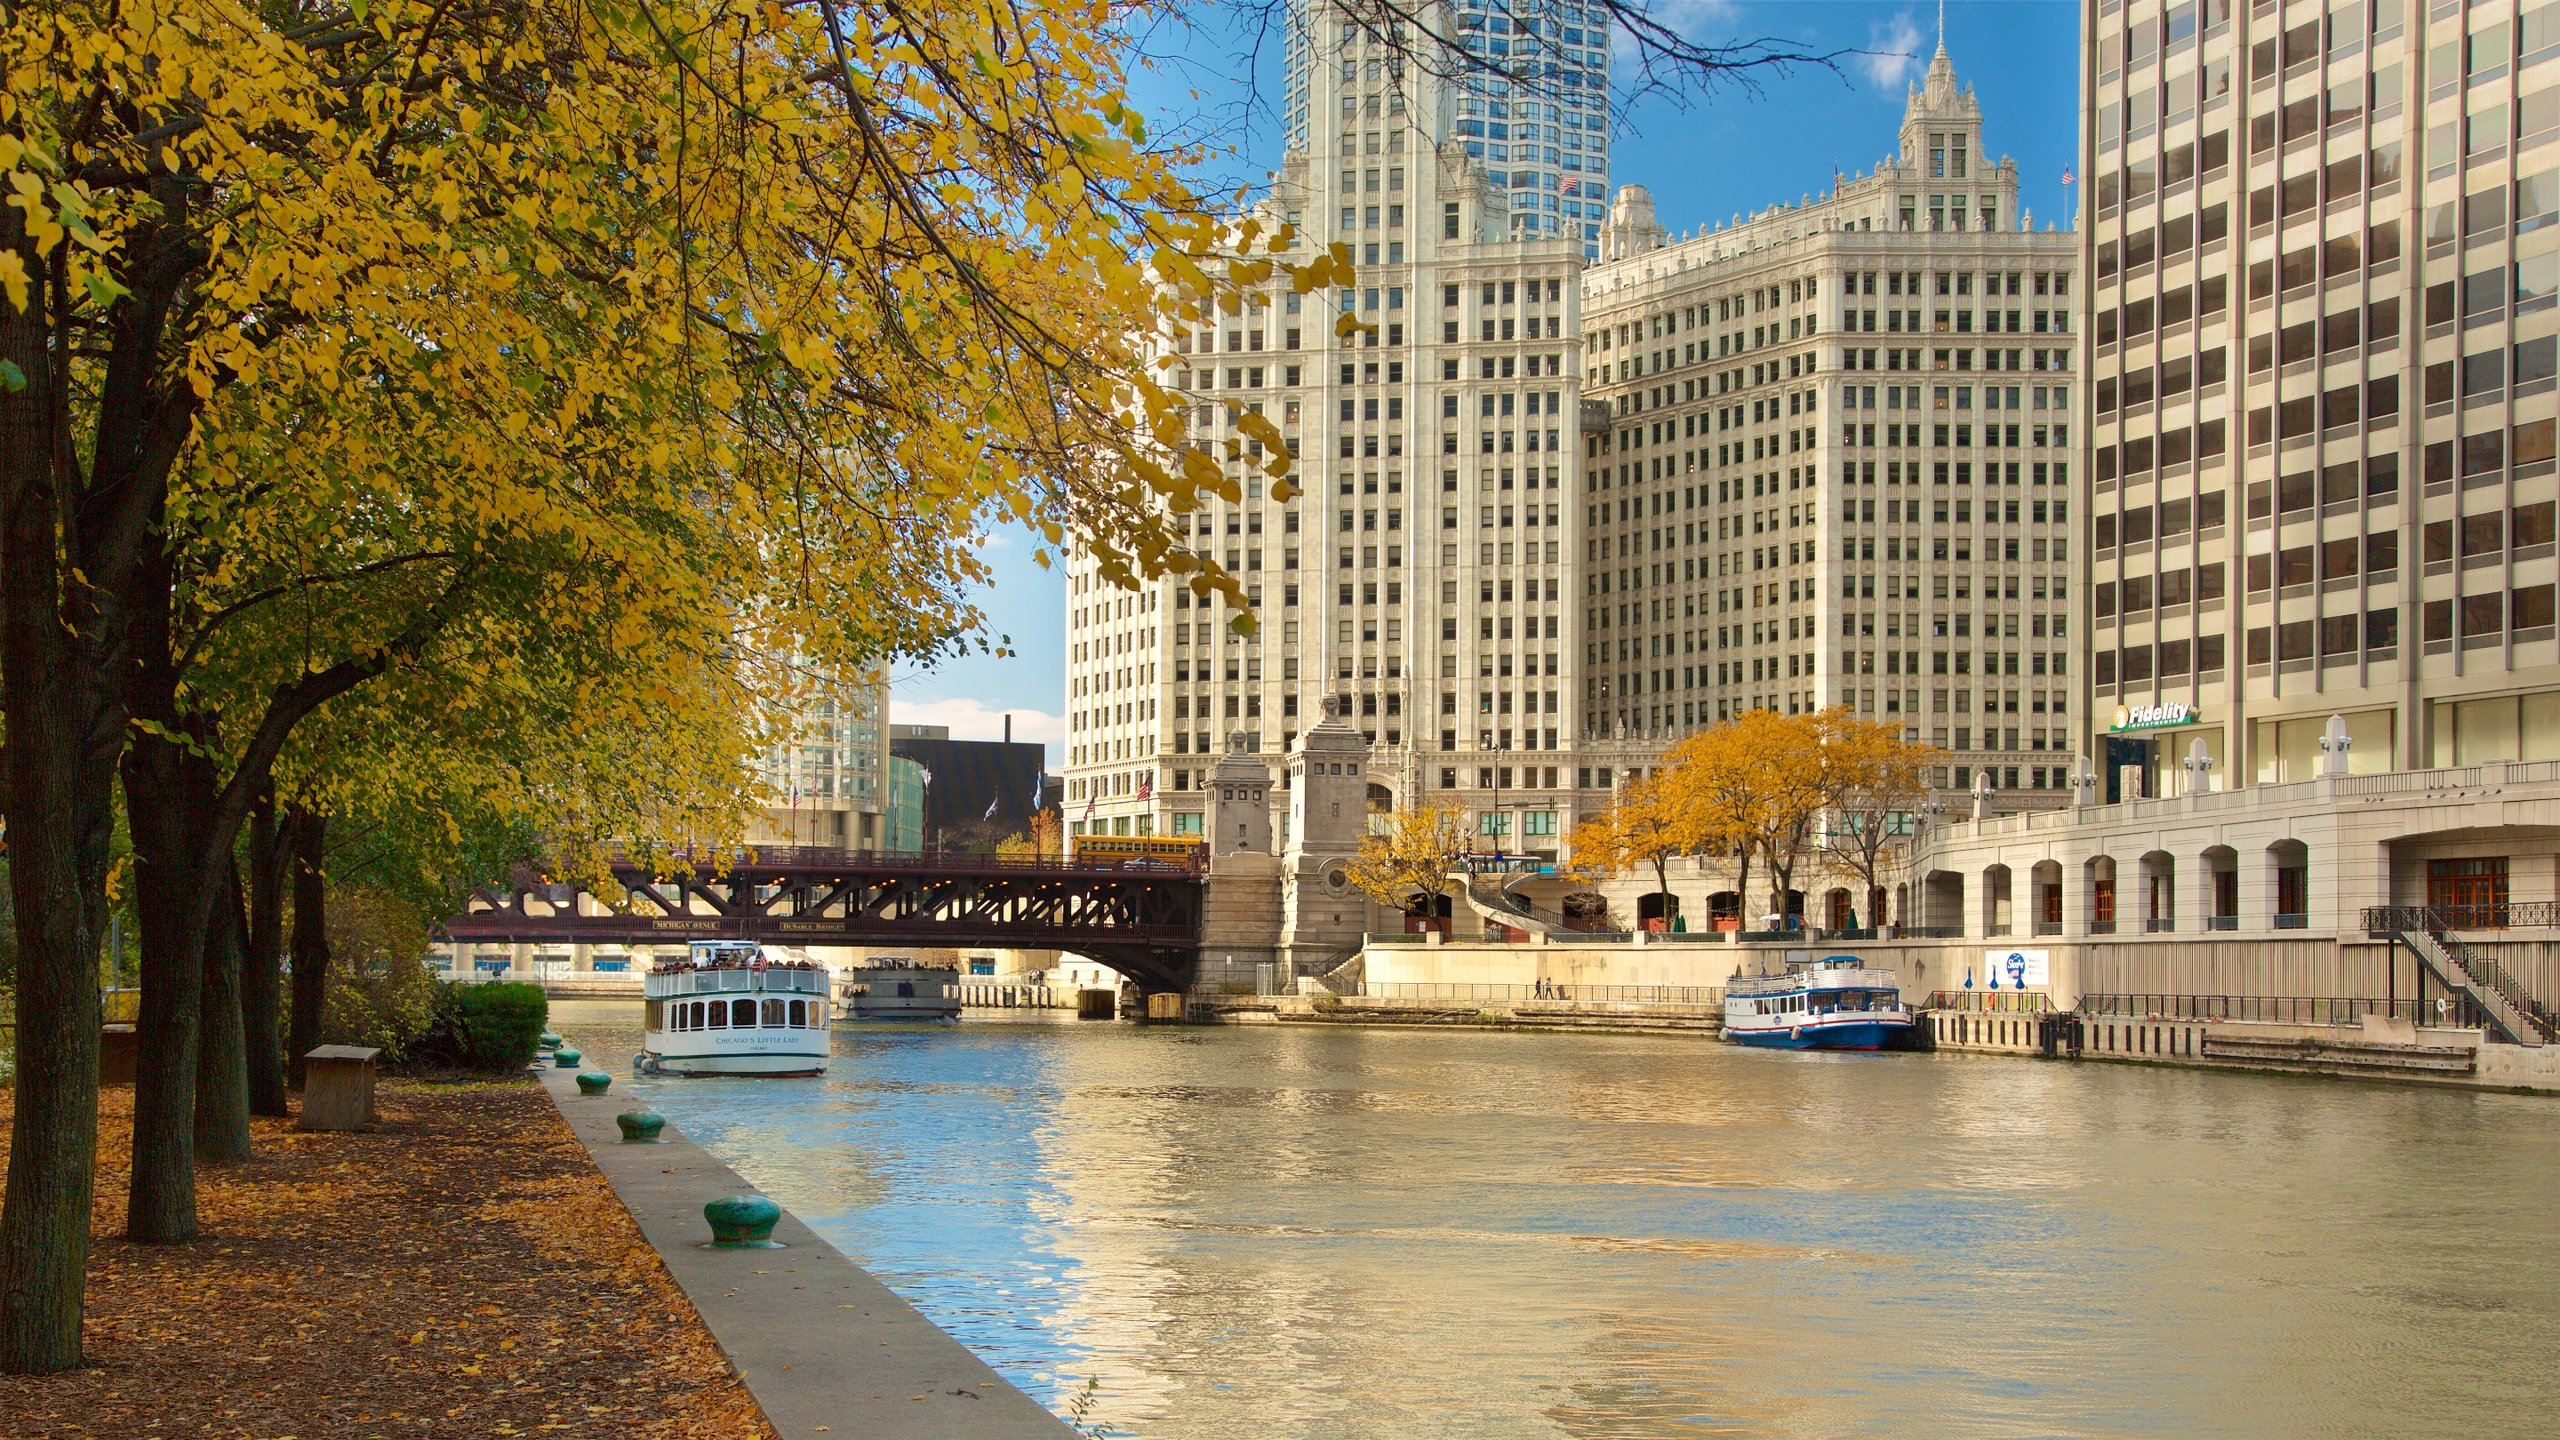 Stroll along the waterfront of the Chicago River to pass some of the city's most appealing attractions and appreciate how a once grim area has been successfully revamped.